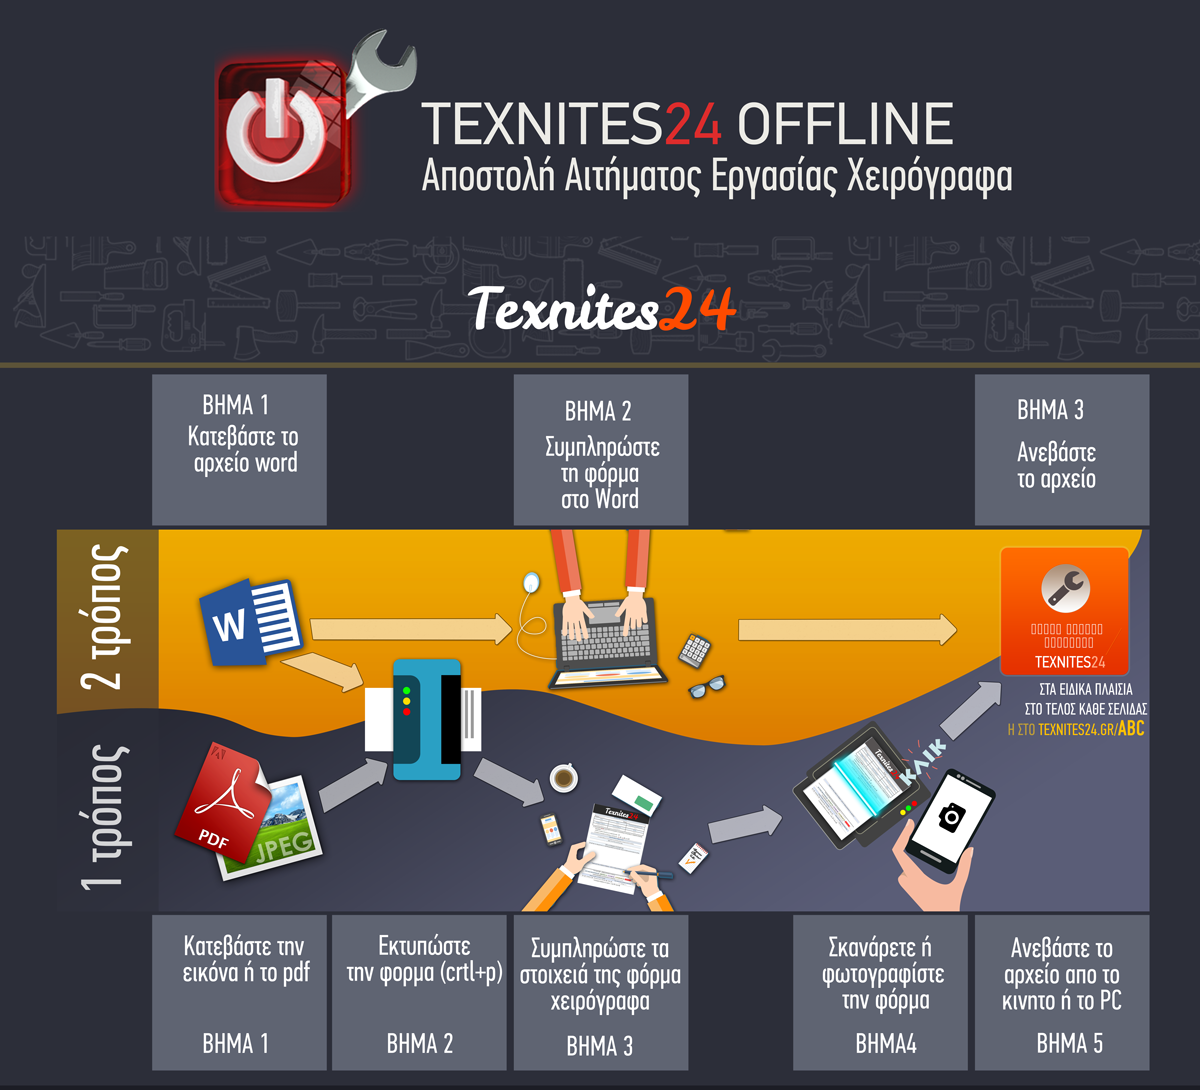 Texnites24 off line Αποστολή Αιτήματος Εργασίας Χειρόγραφα